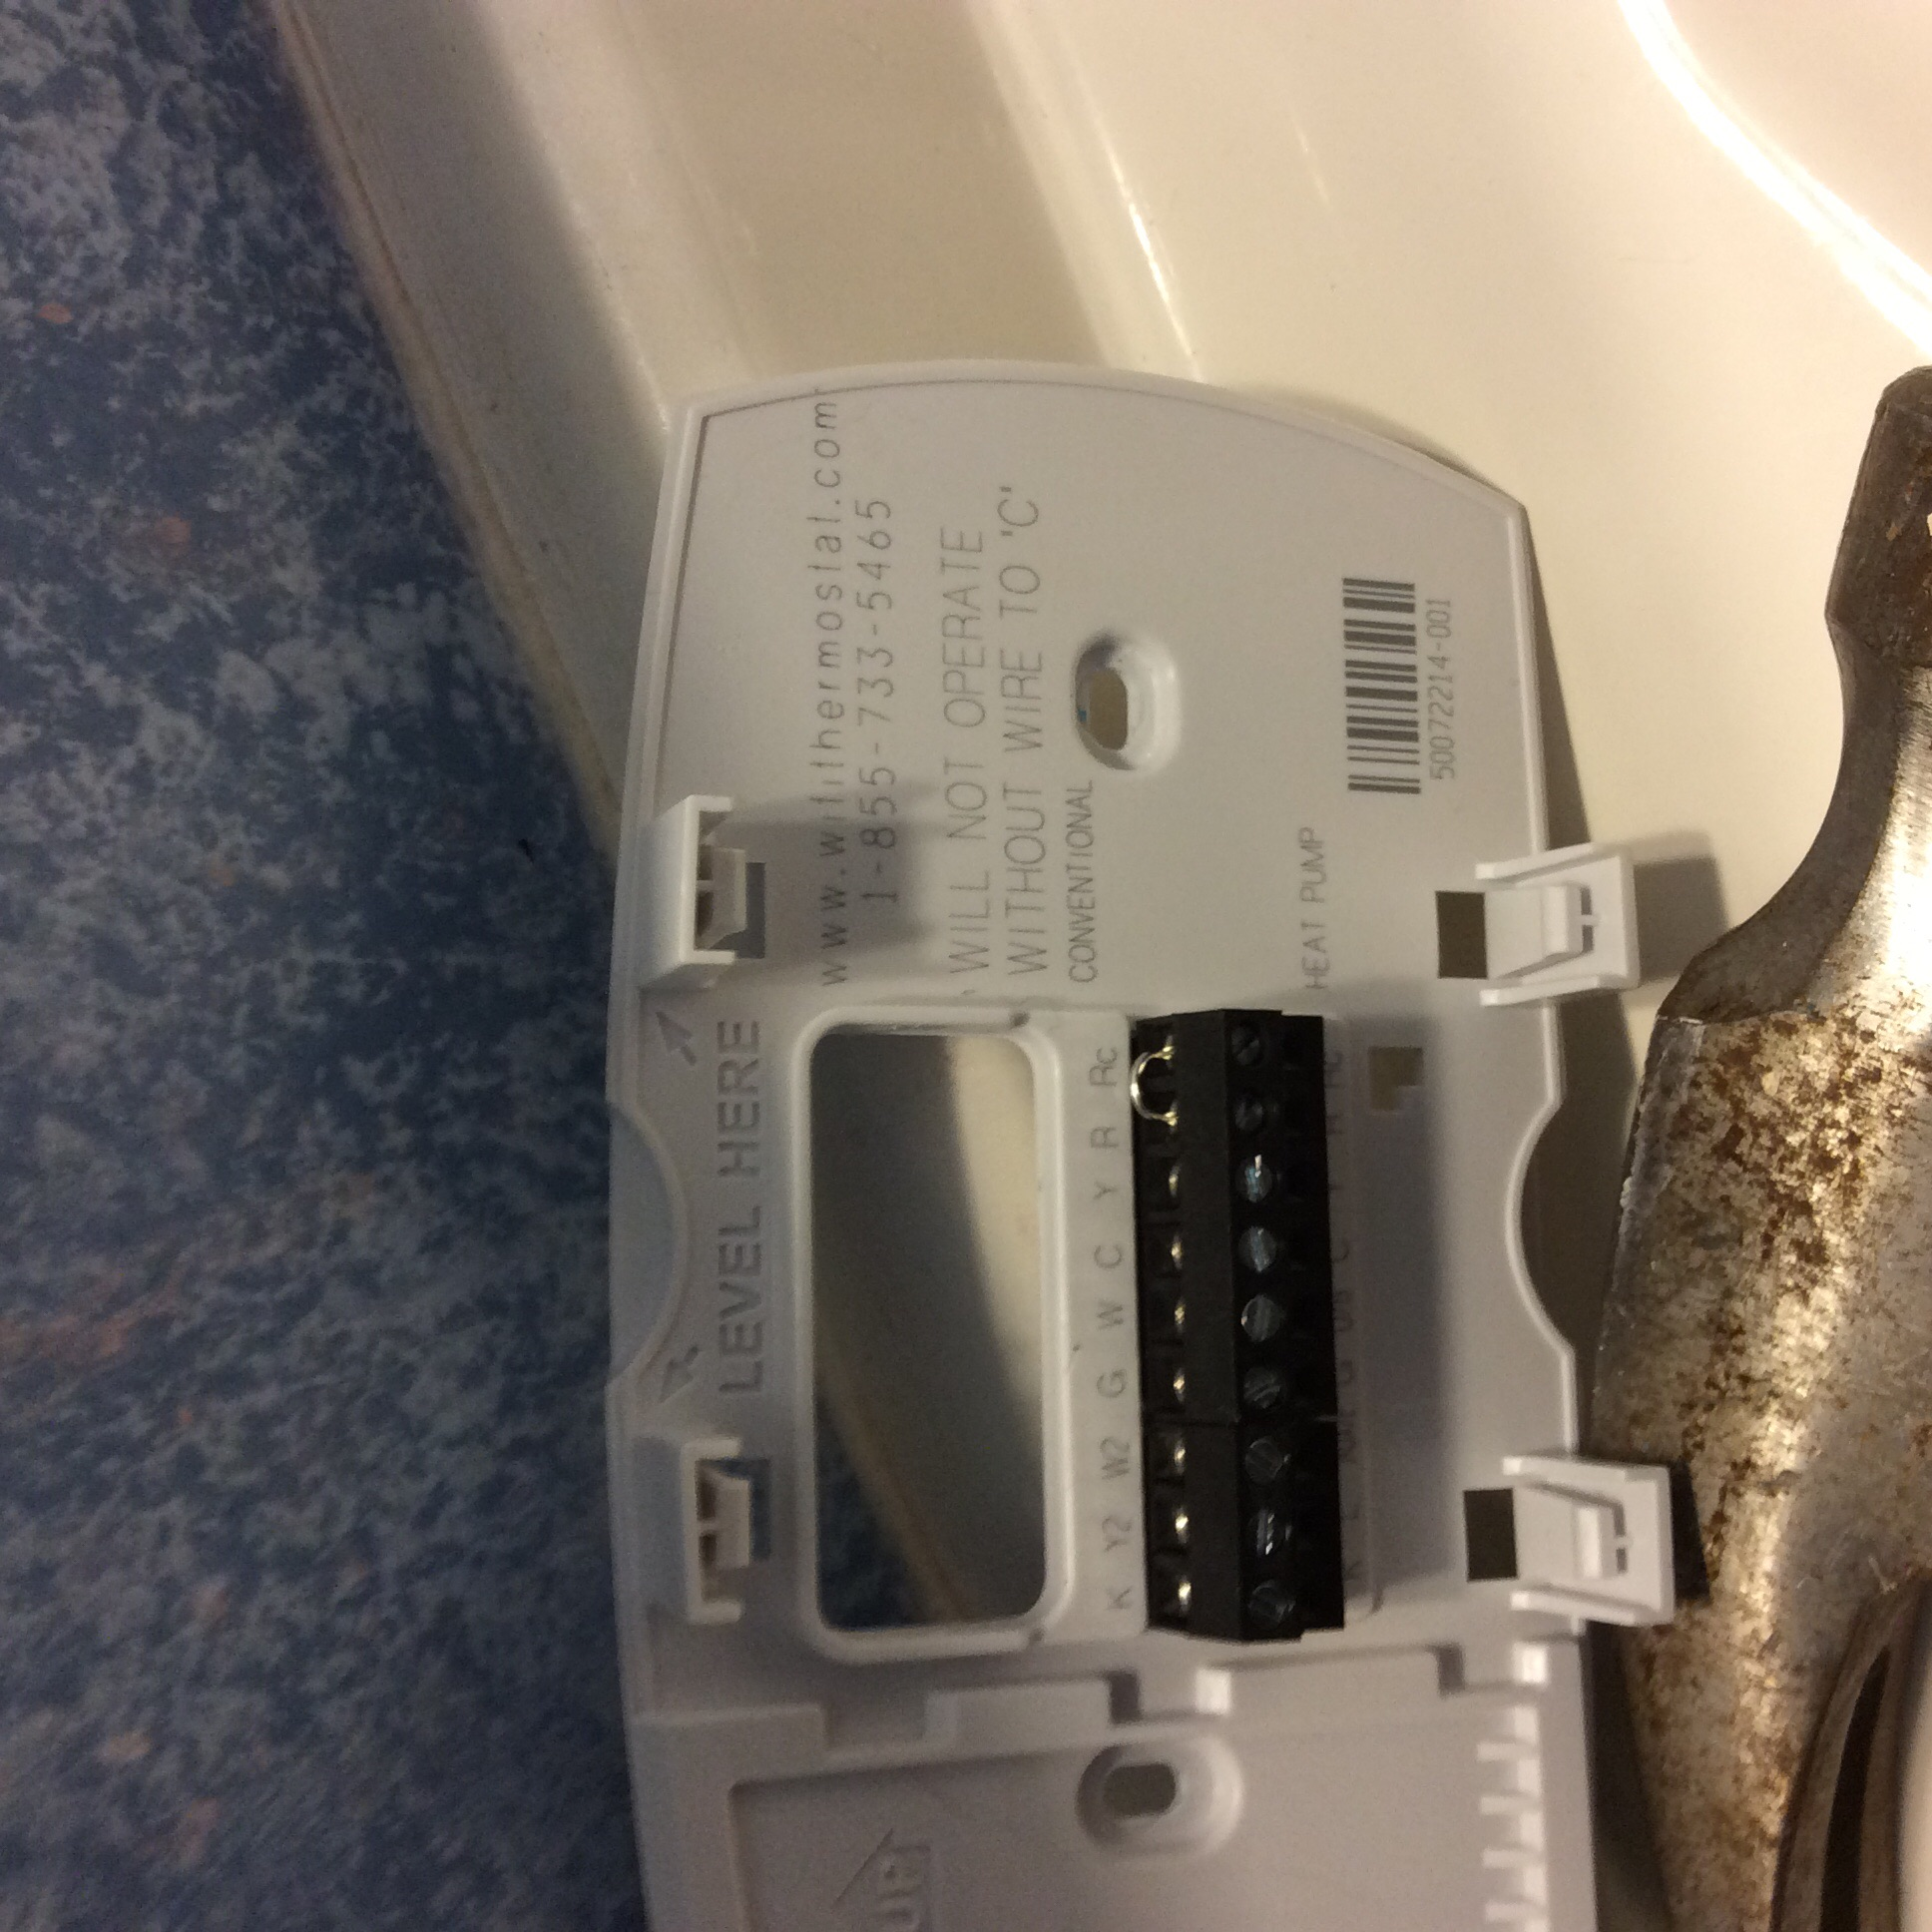 I am replacing a Rheem thermostat with a Honeywell RTH6500WIFI ...